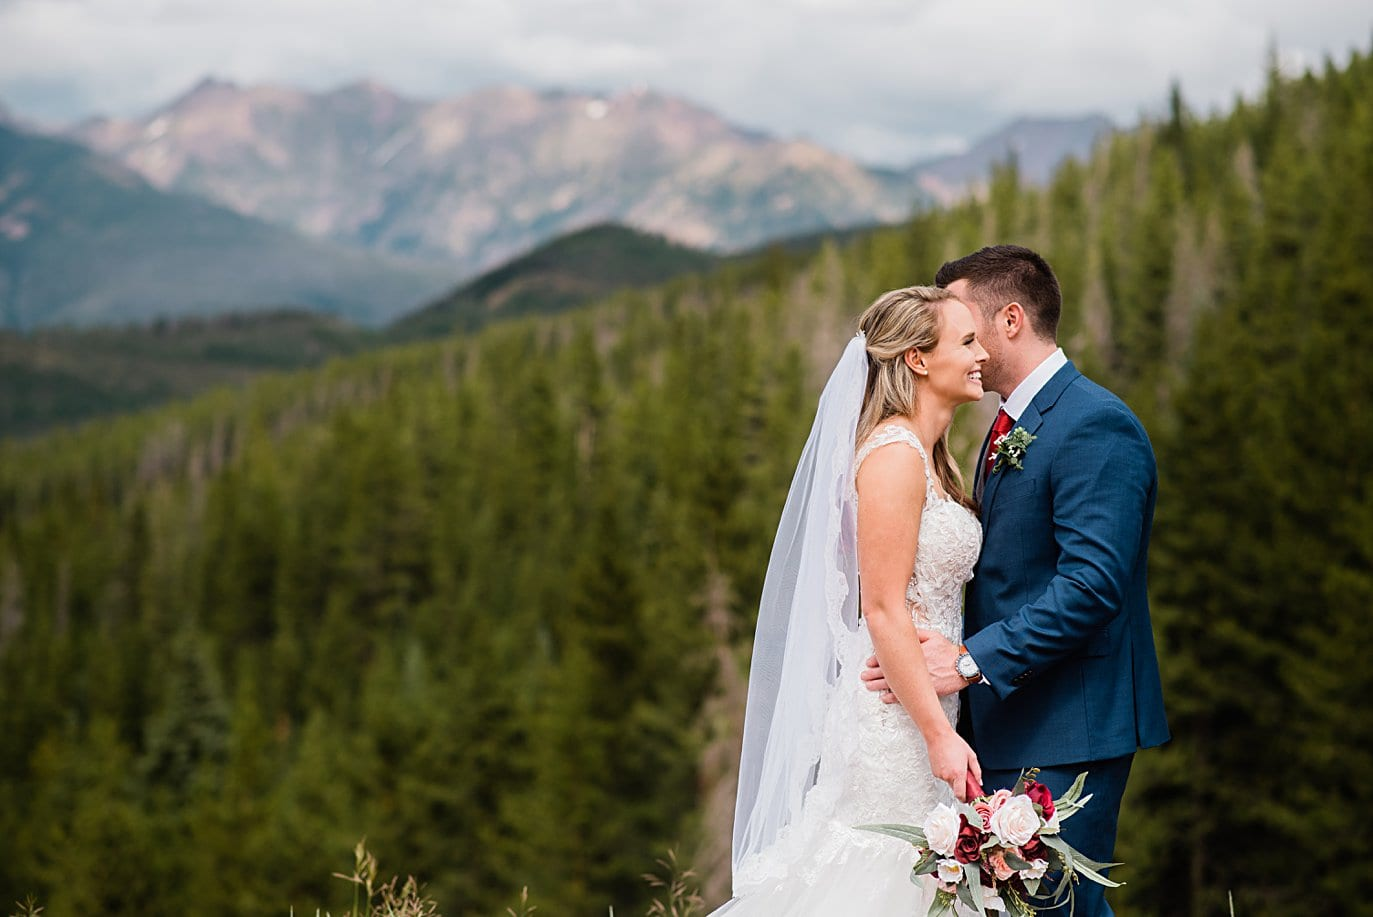 bride and groom intimate portrait at top of Vail mountain at Vail Manor Lodge wedding by Breckenridge wedding photographer Jennie Crate